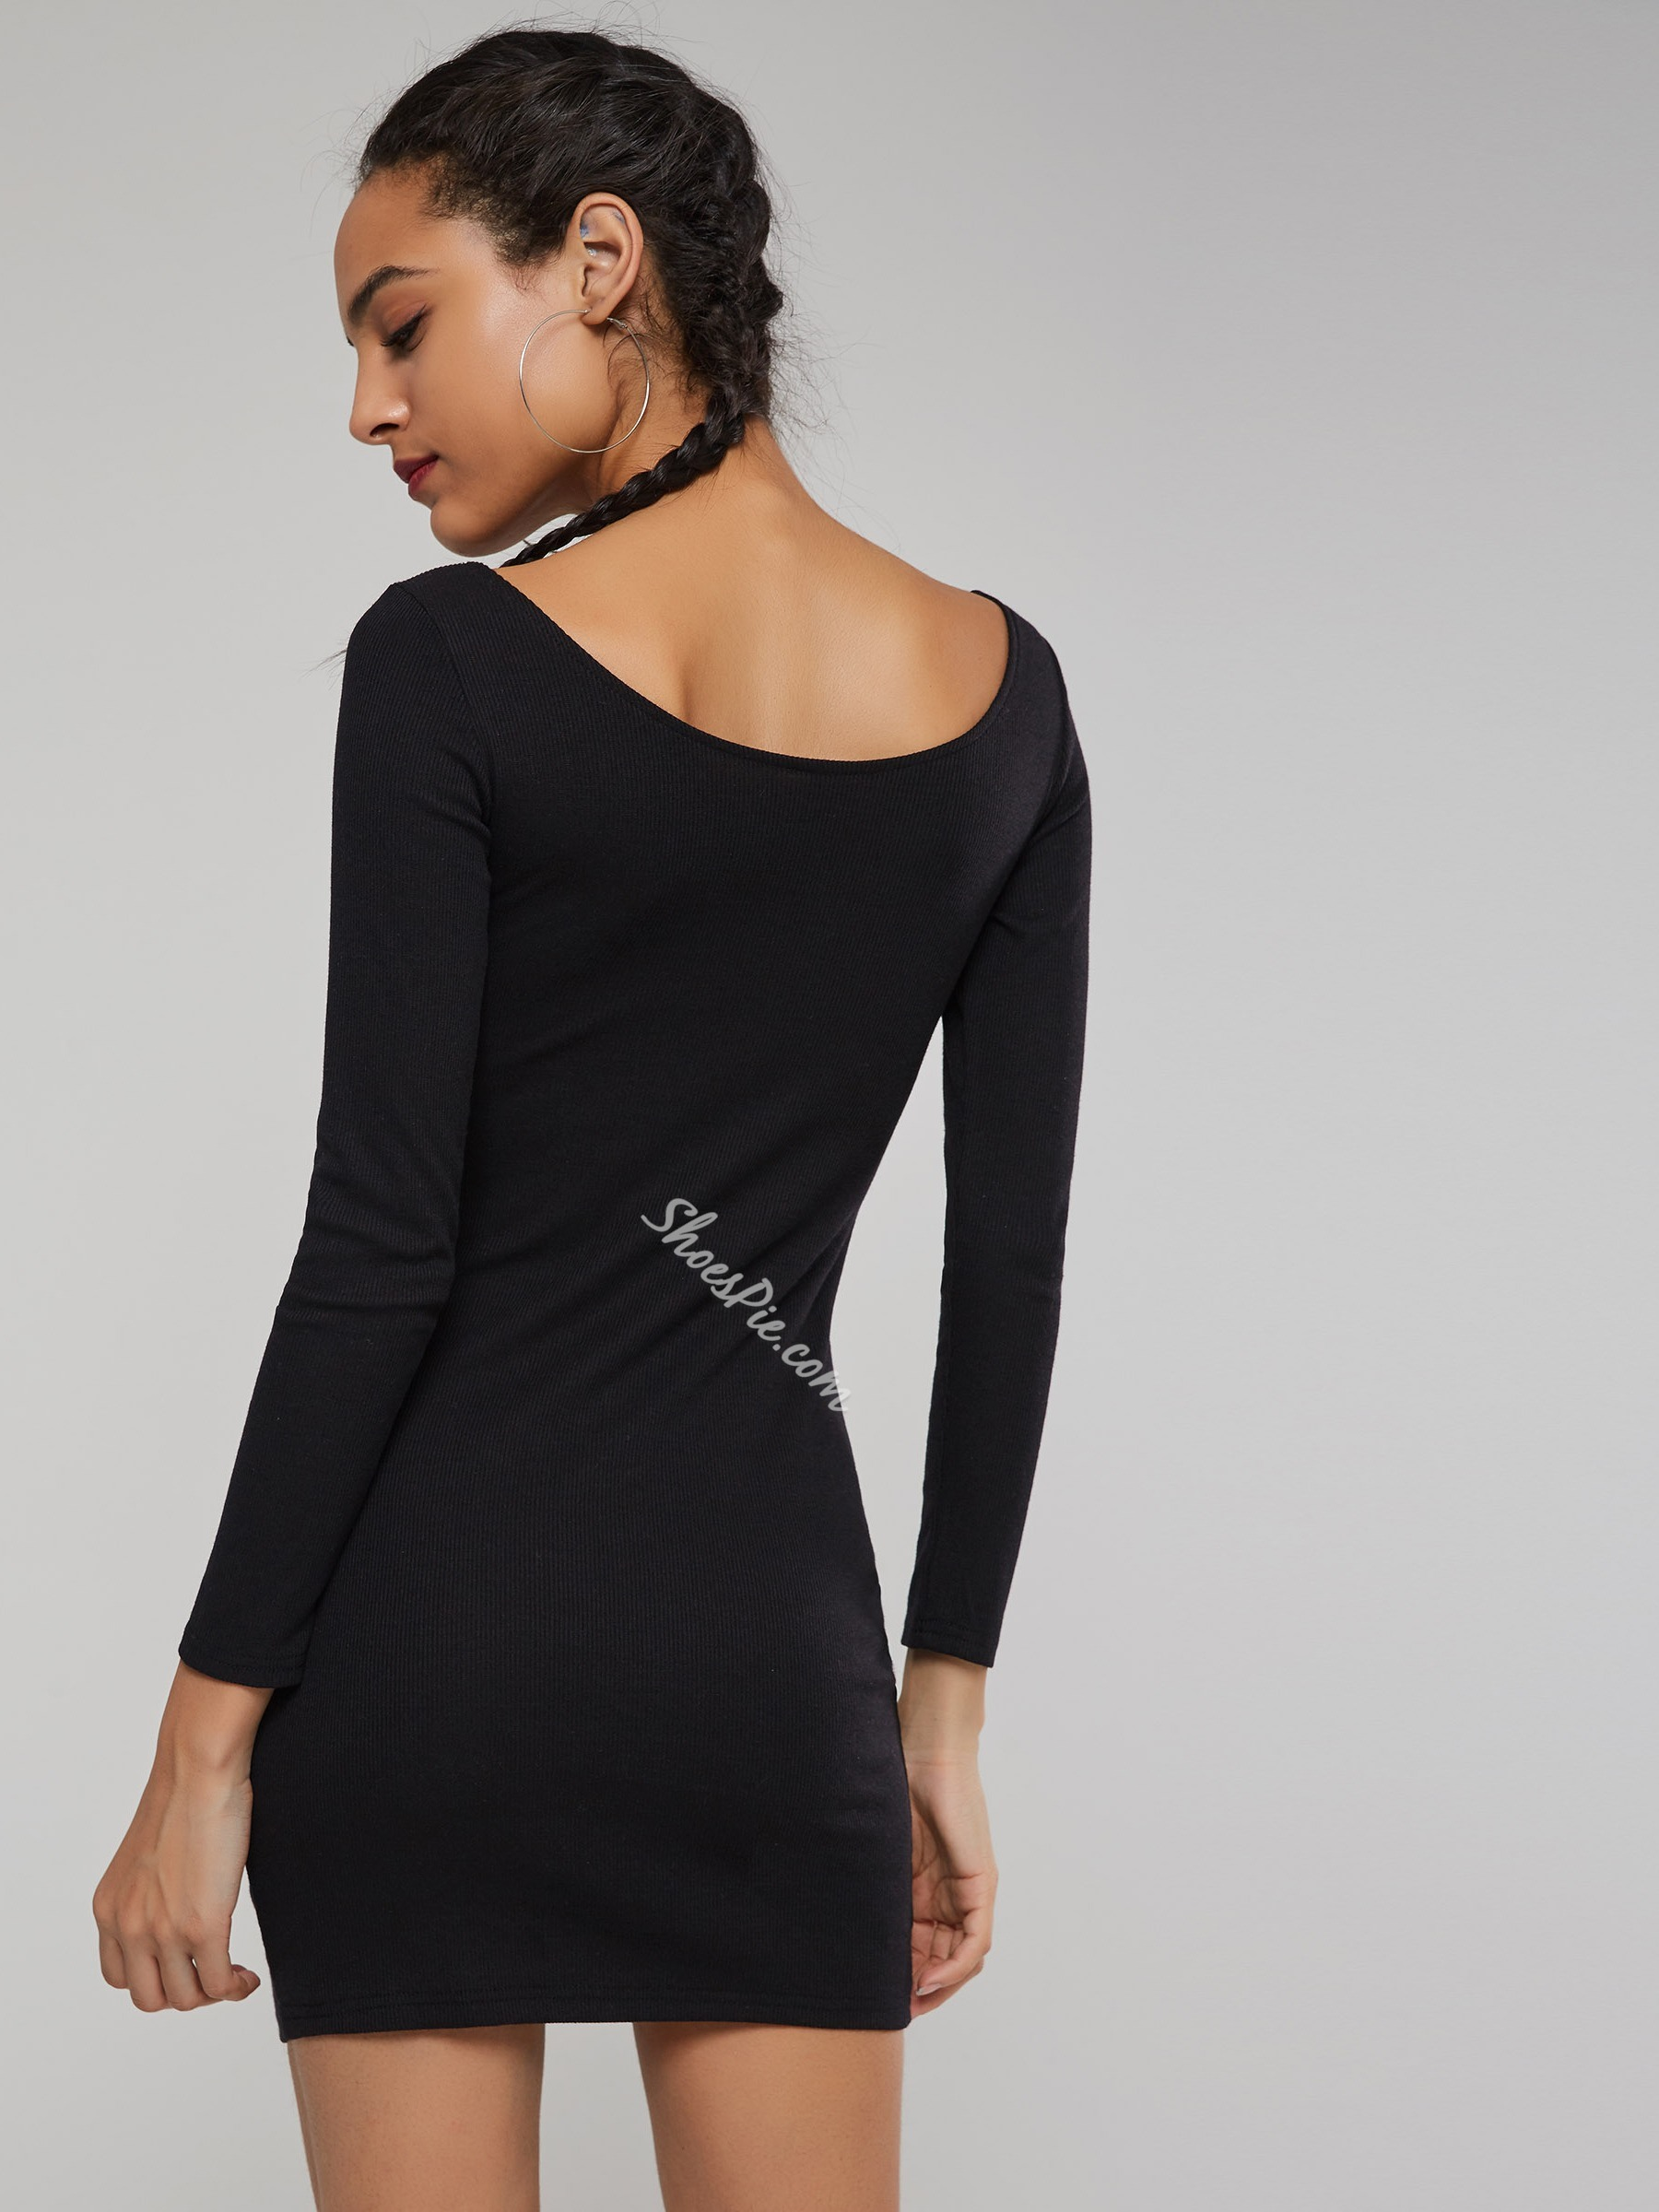 Long Sleeve Pullover Sexy Women's Sexy Dress